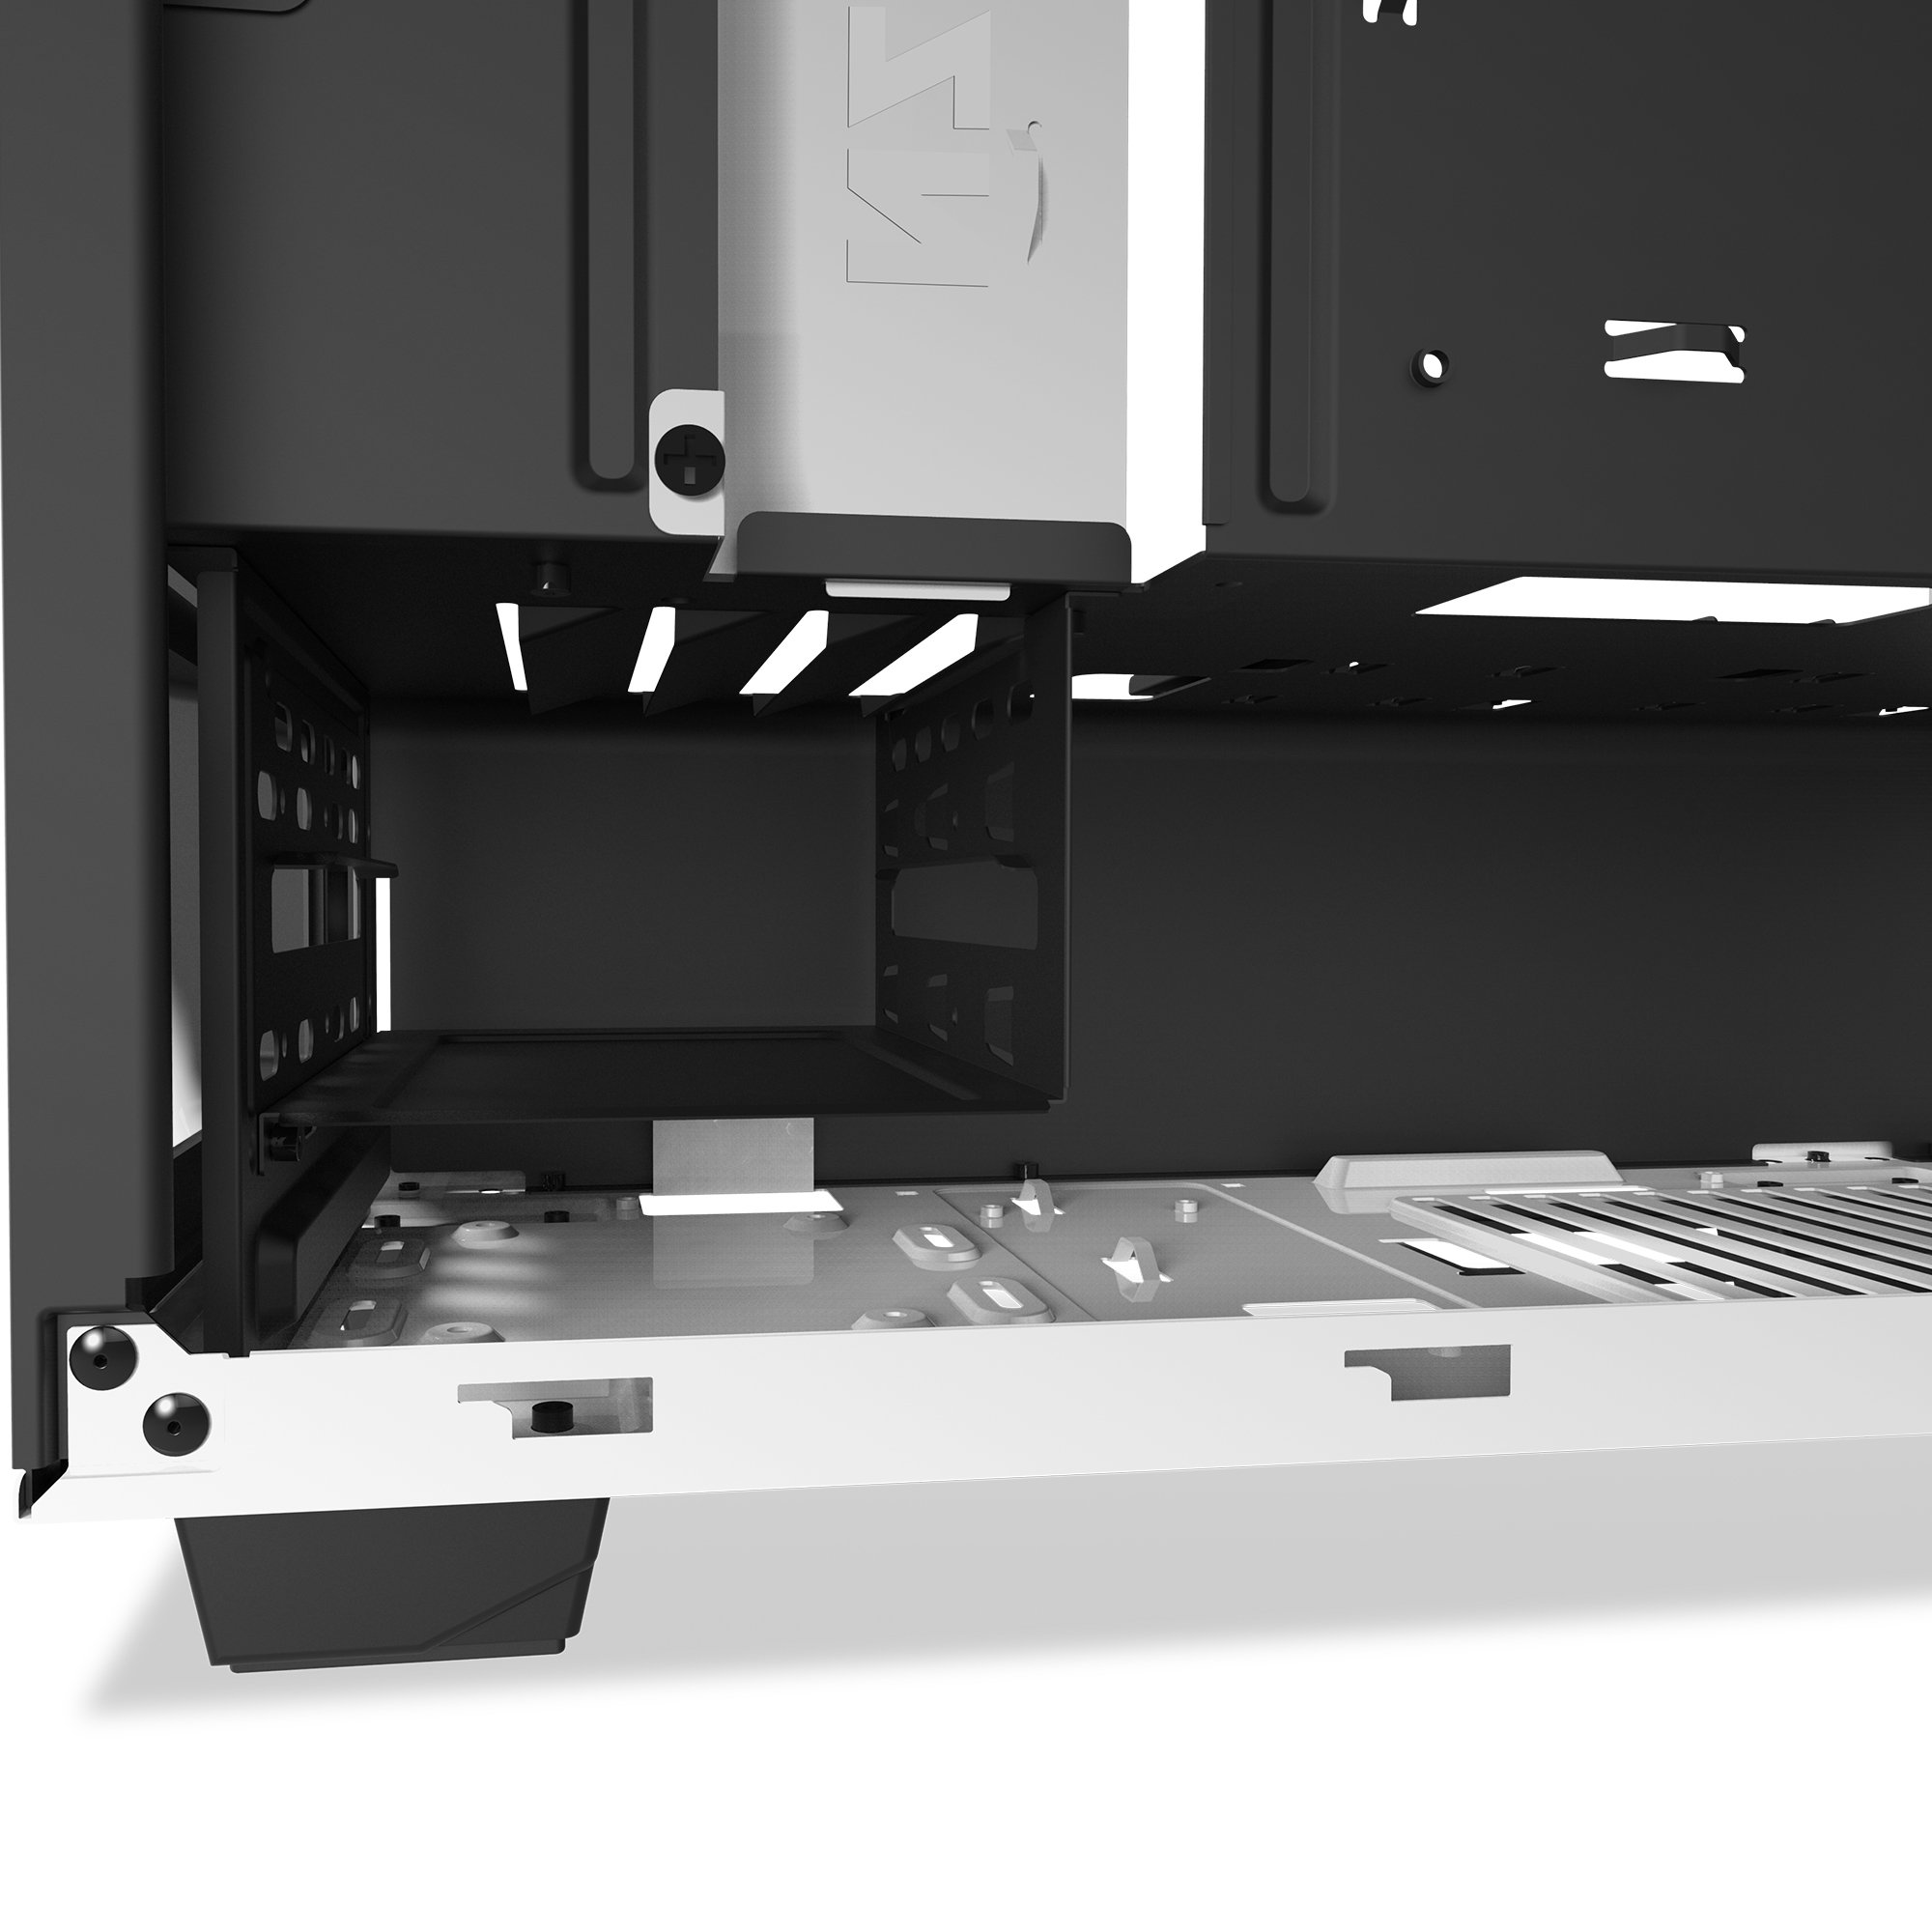 NZXT S340 Mid Tower Computer Case, White (CA-S340W-W1) by Nzxt (Image #5)